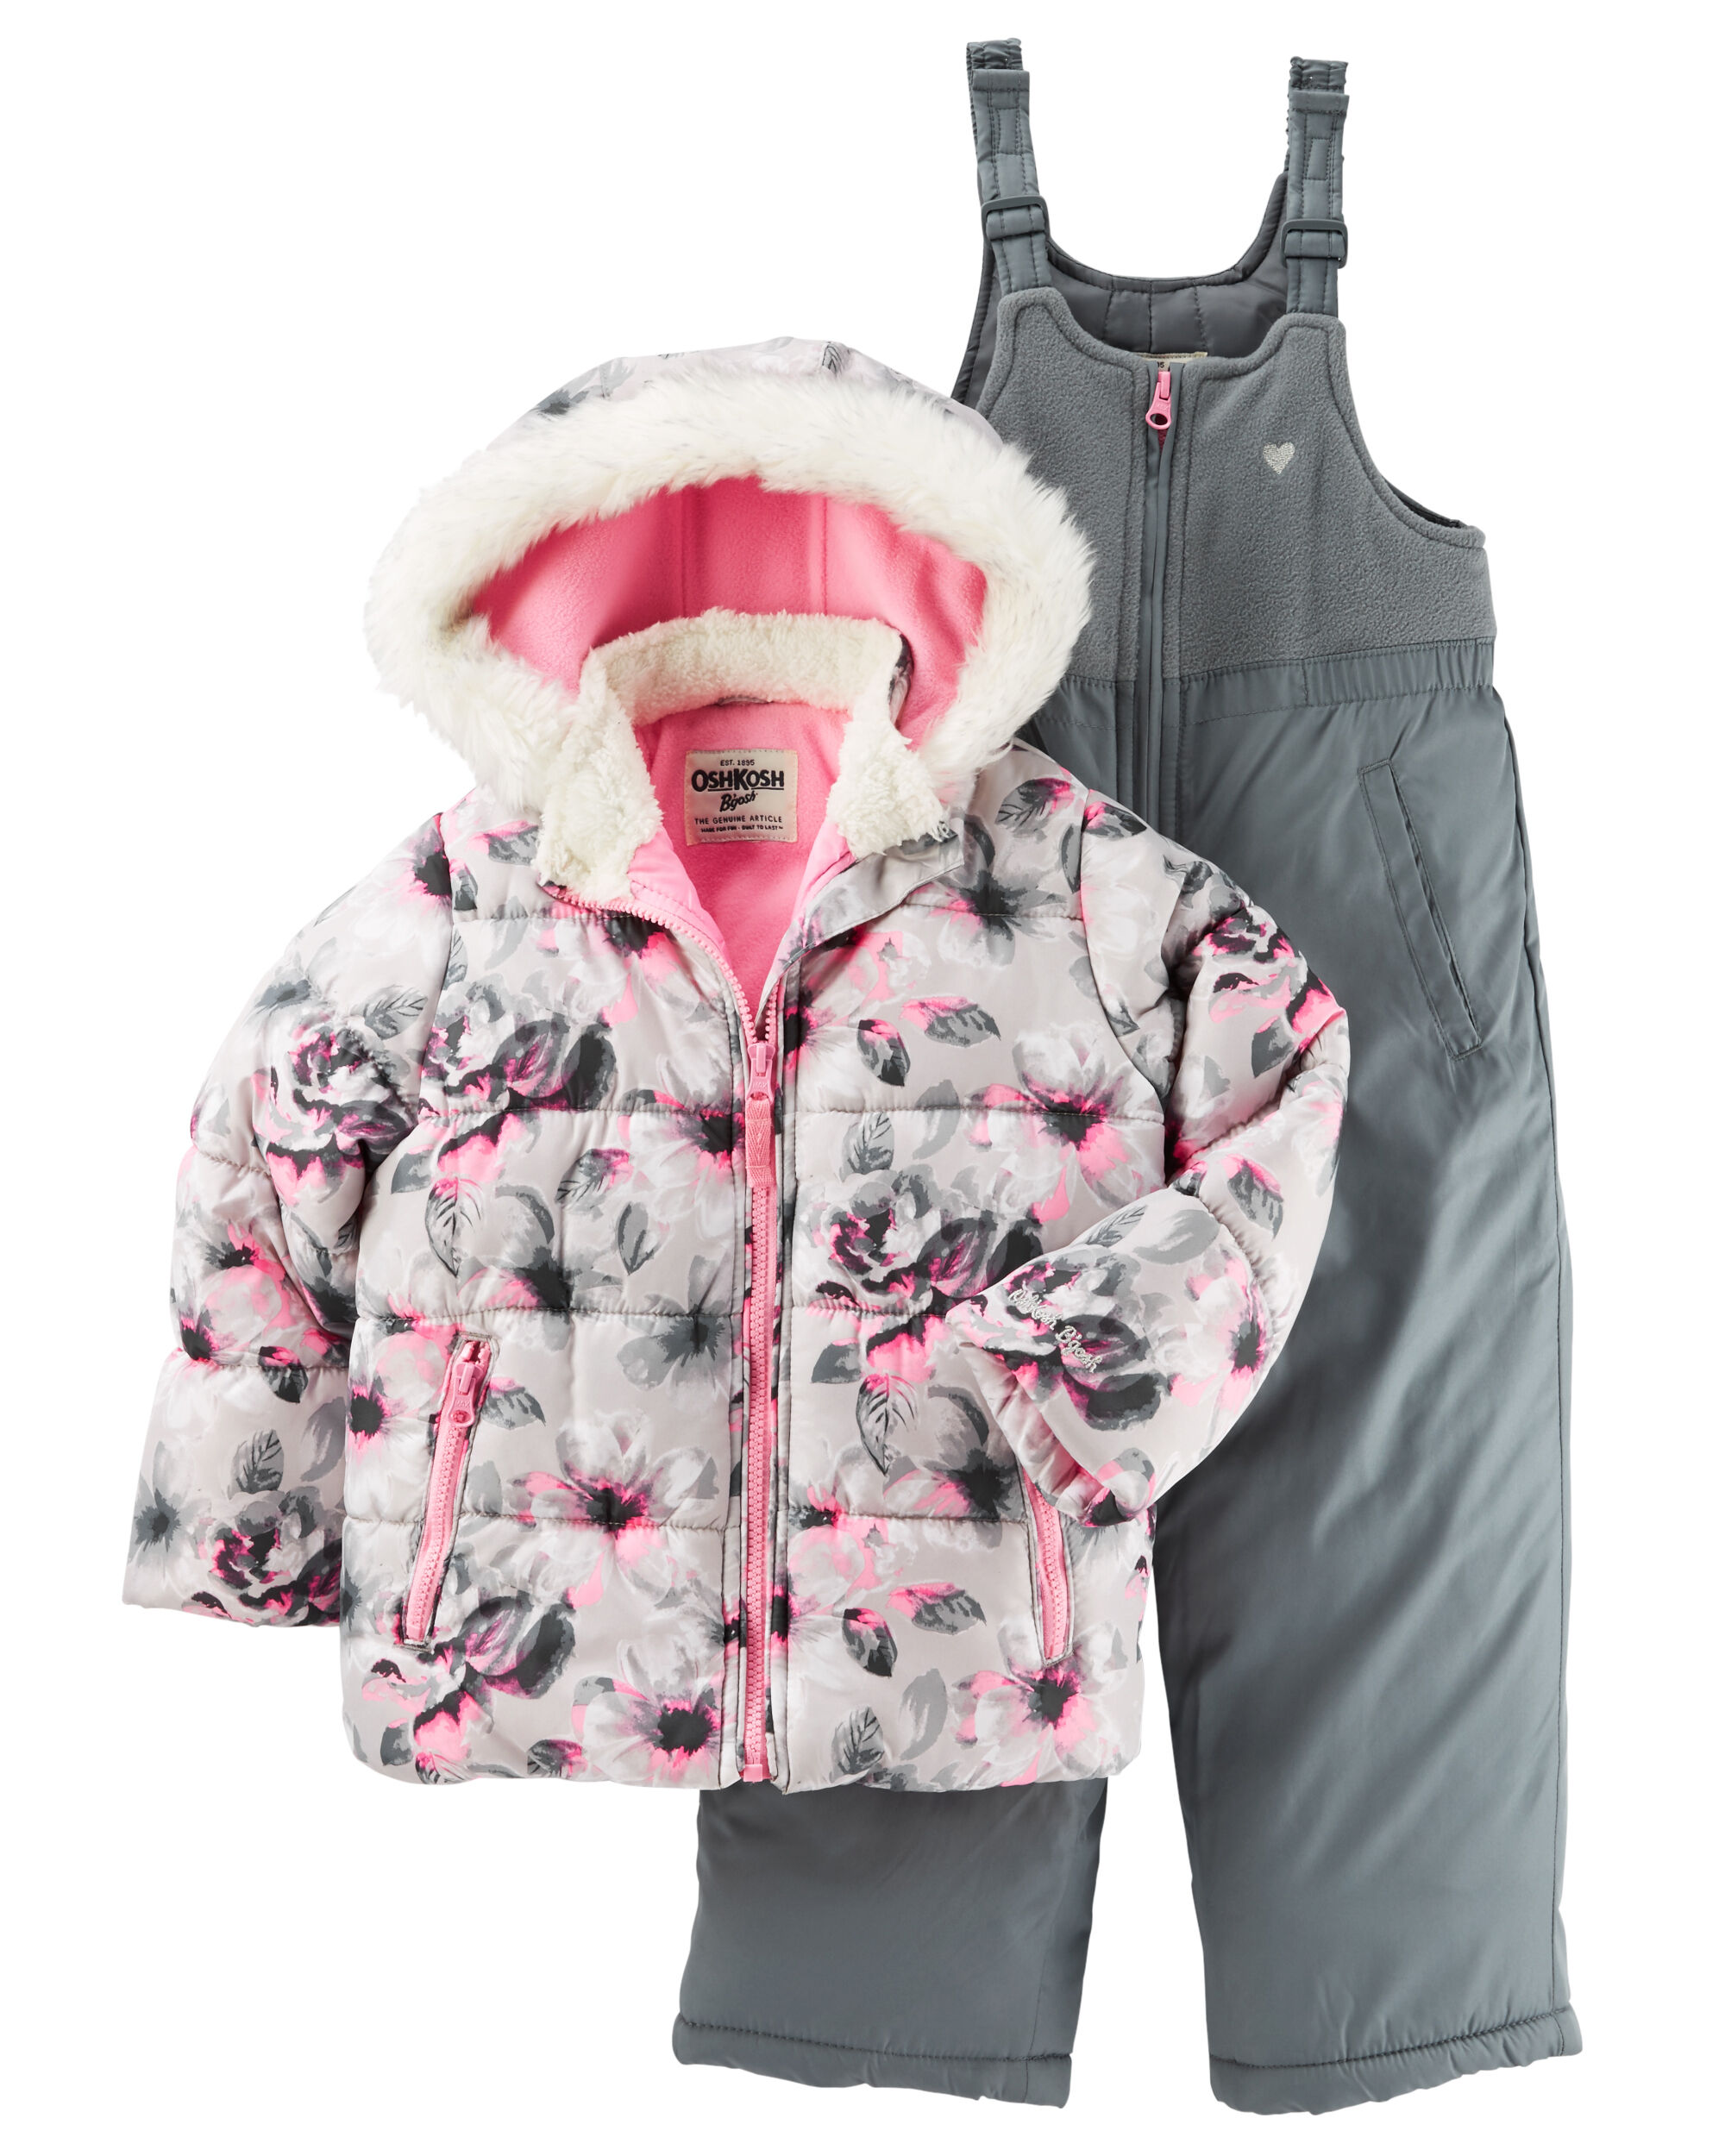 8946170bd7cc Oshkosh Canada Winter Coats - Tradingbasis